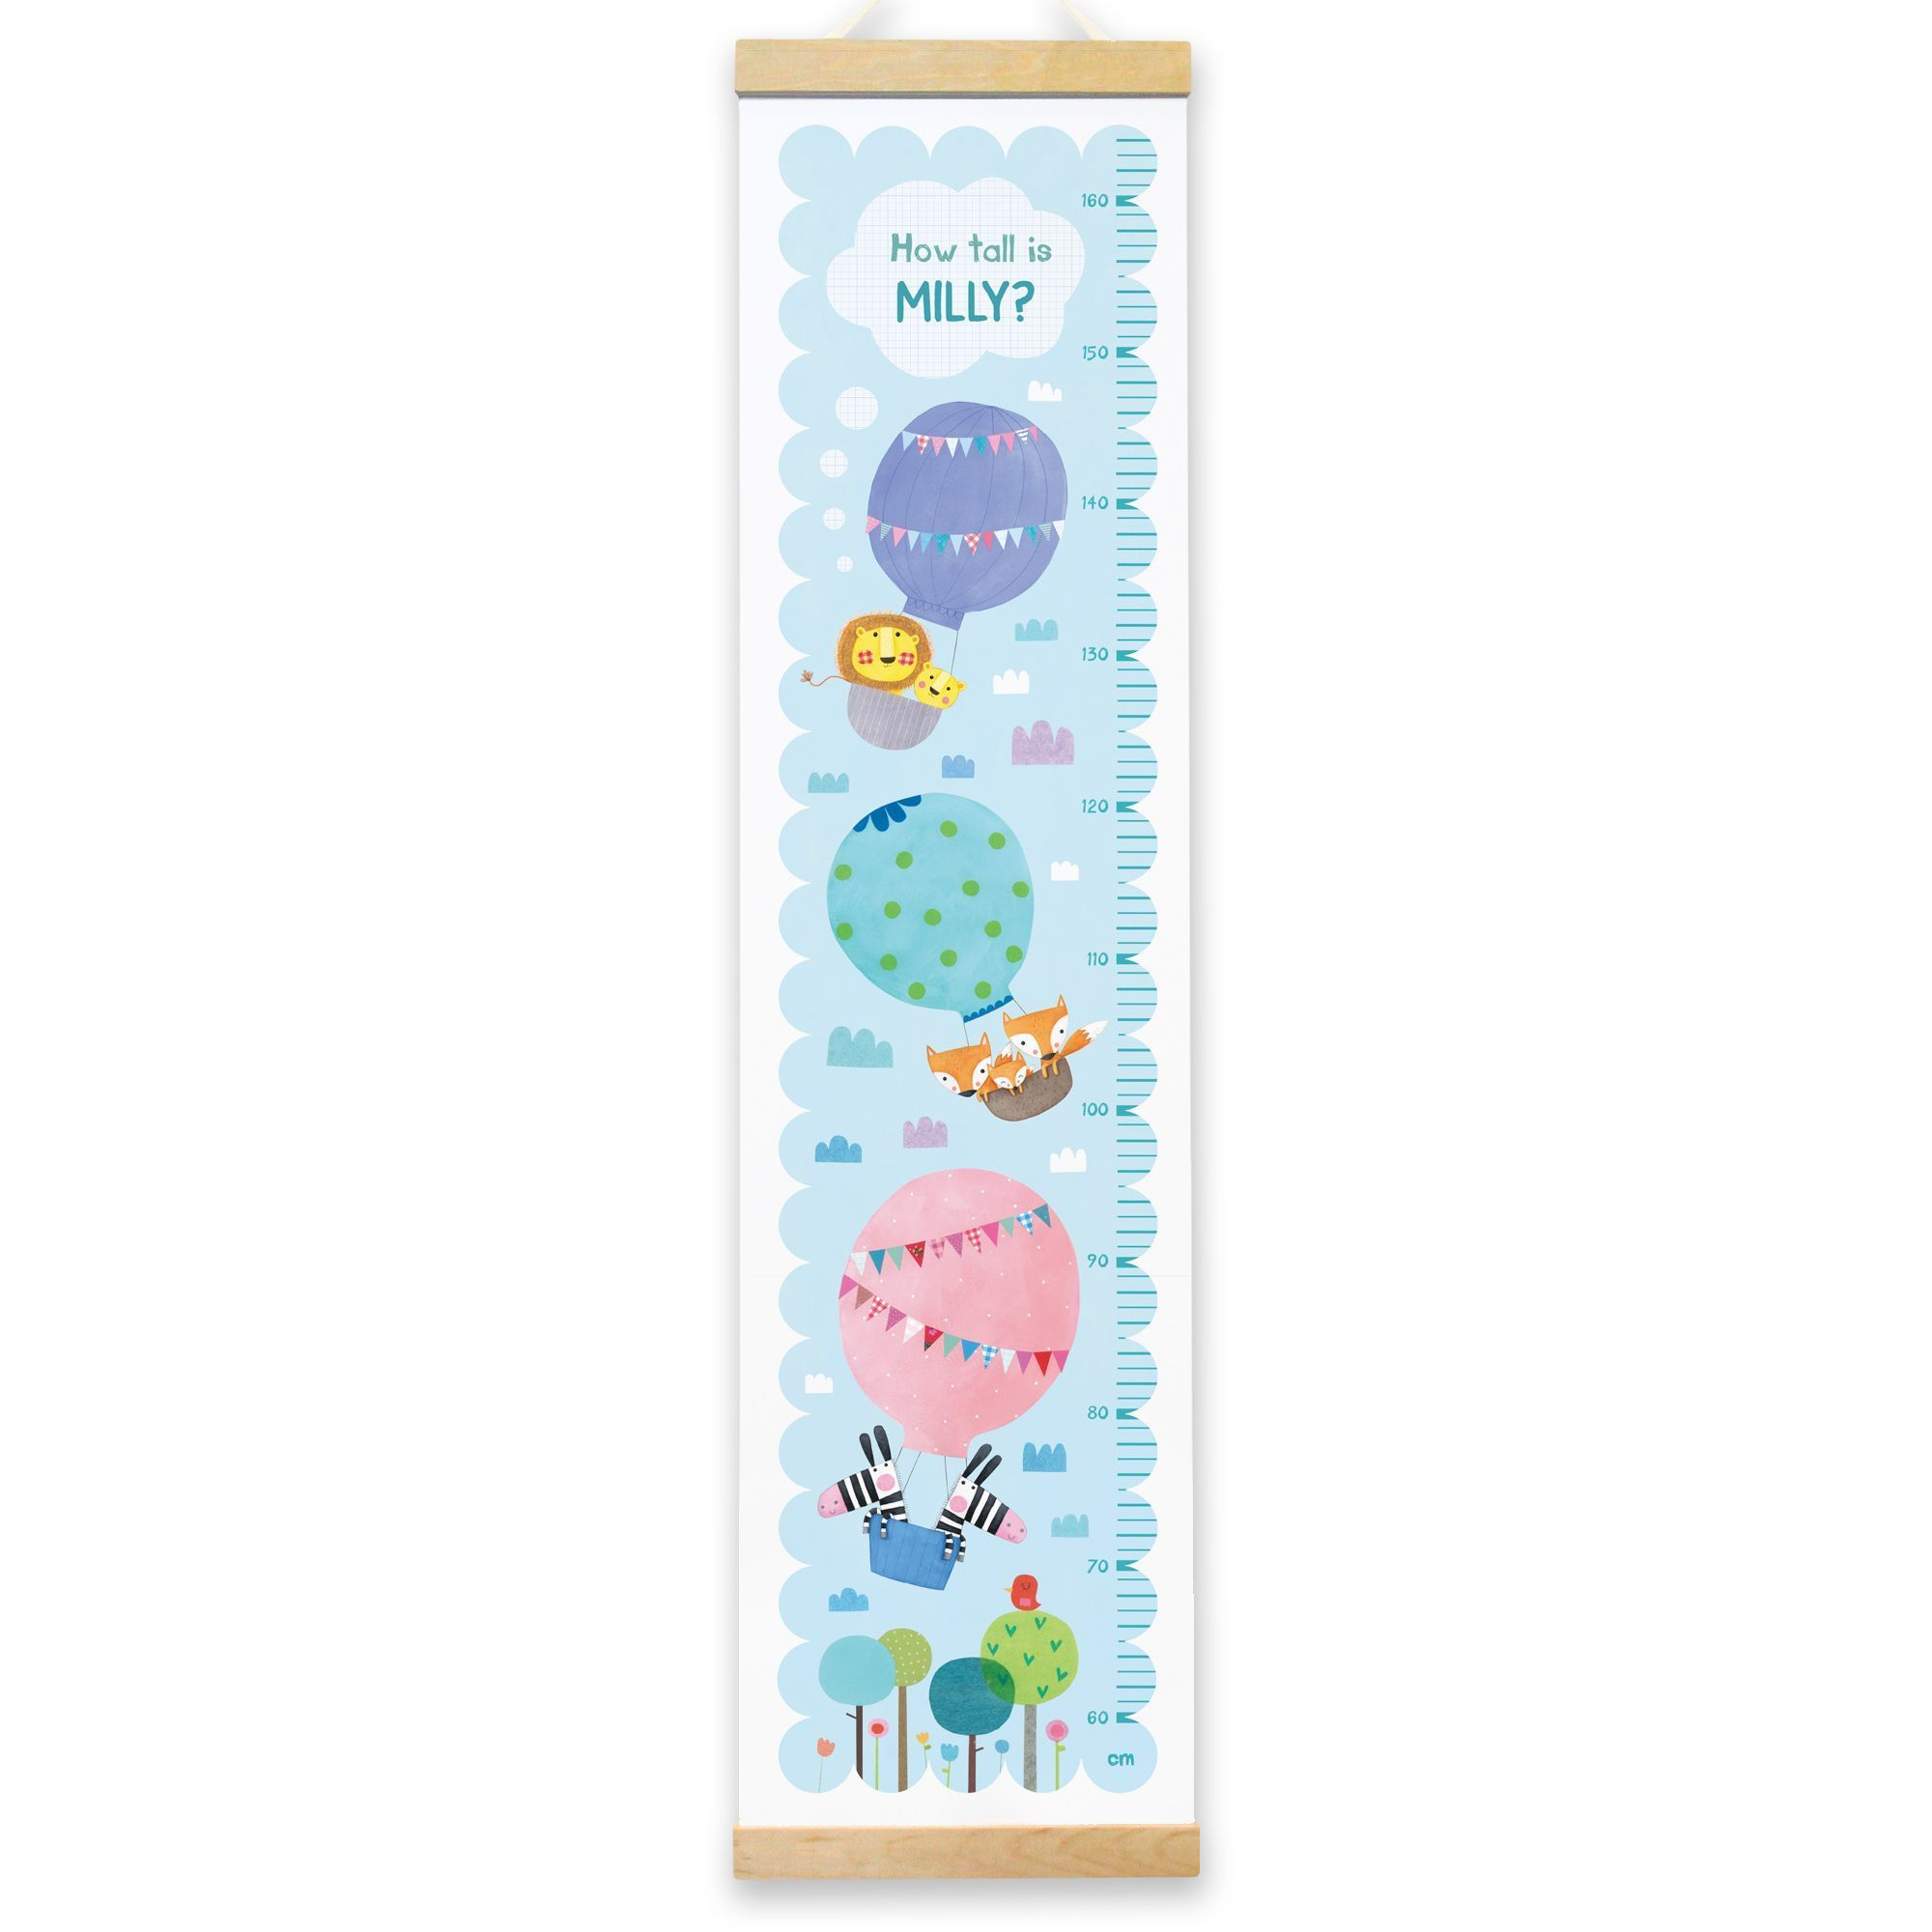 Personalised Balloons Height Chart #personalisedballoons Personalised Balloons Height Chart #personalisedballoons Personalised Balloons Height Chart #personalisedballoons Personalised Balloons Height Chart #personalisedballoons